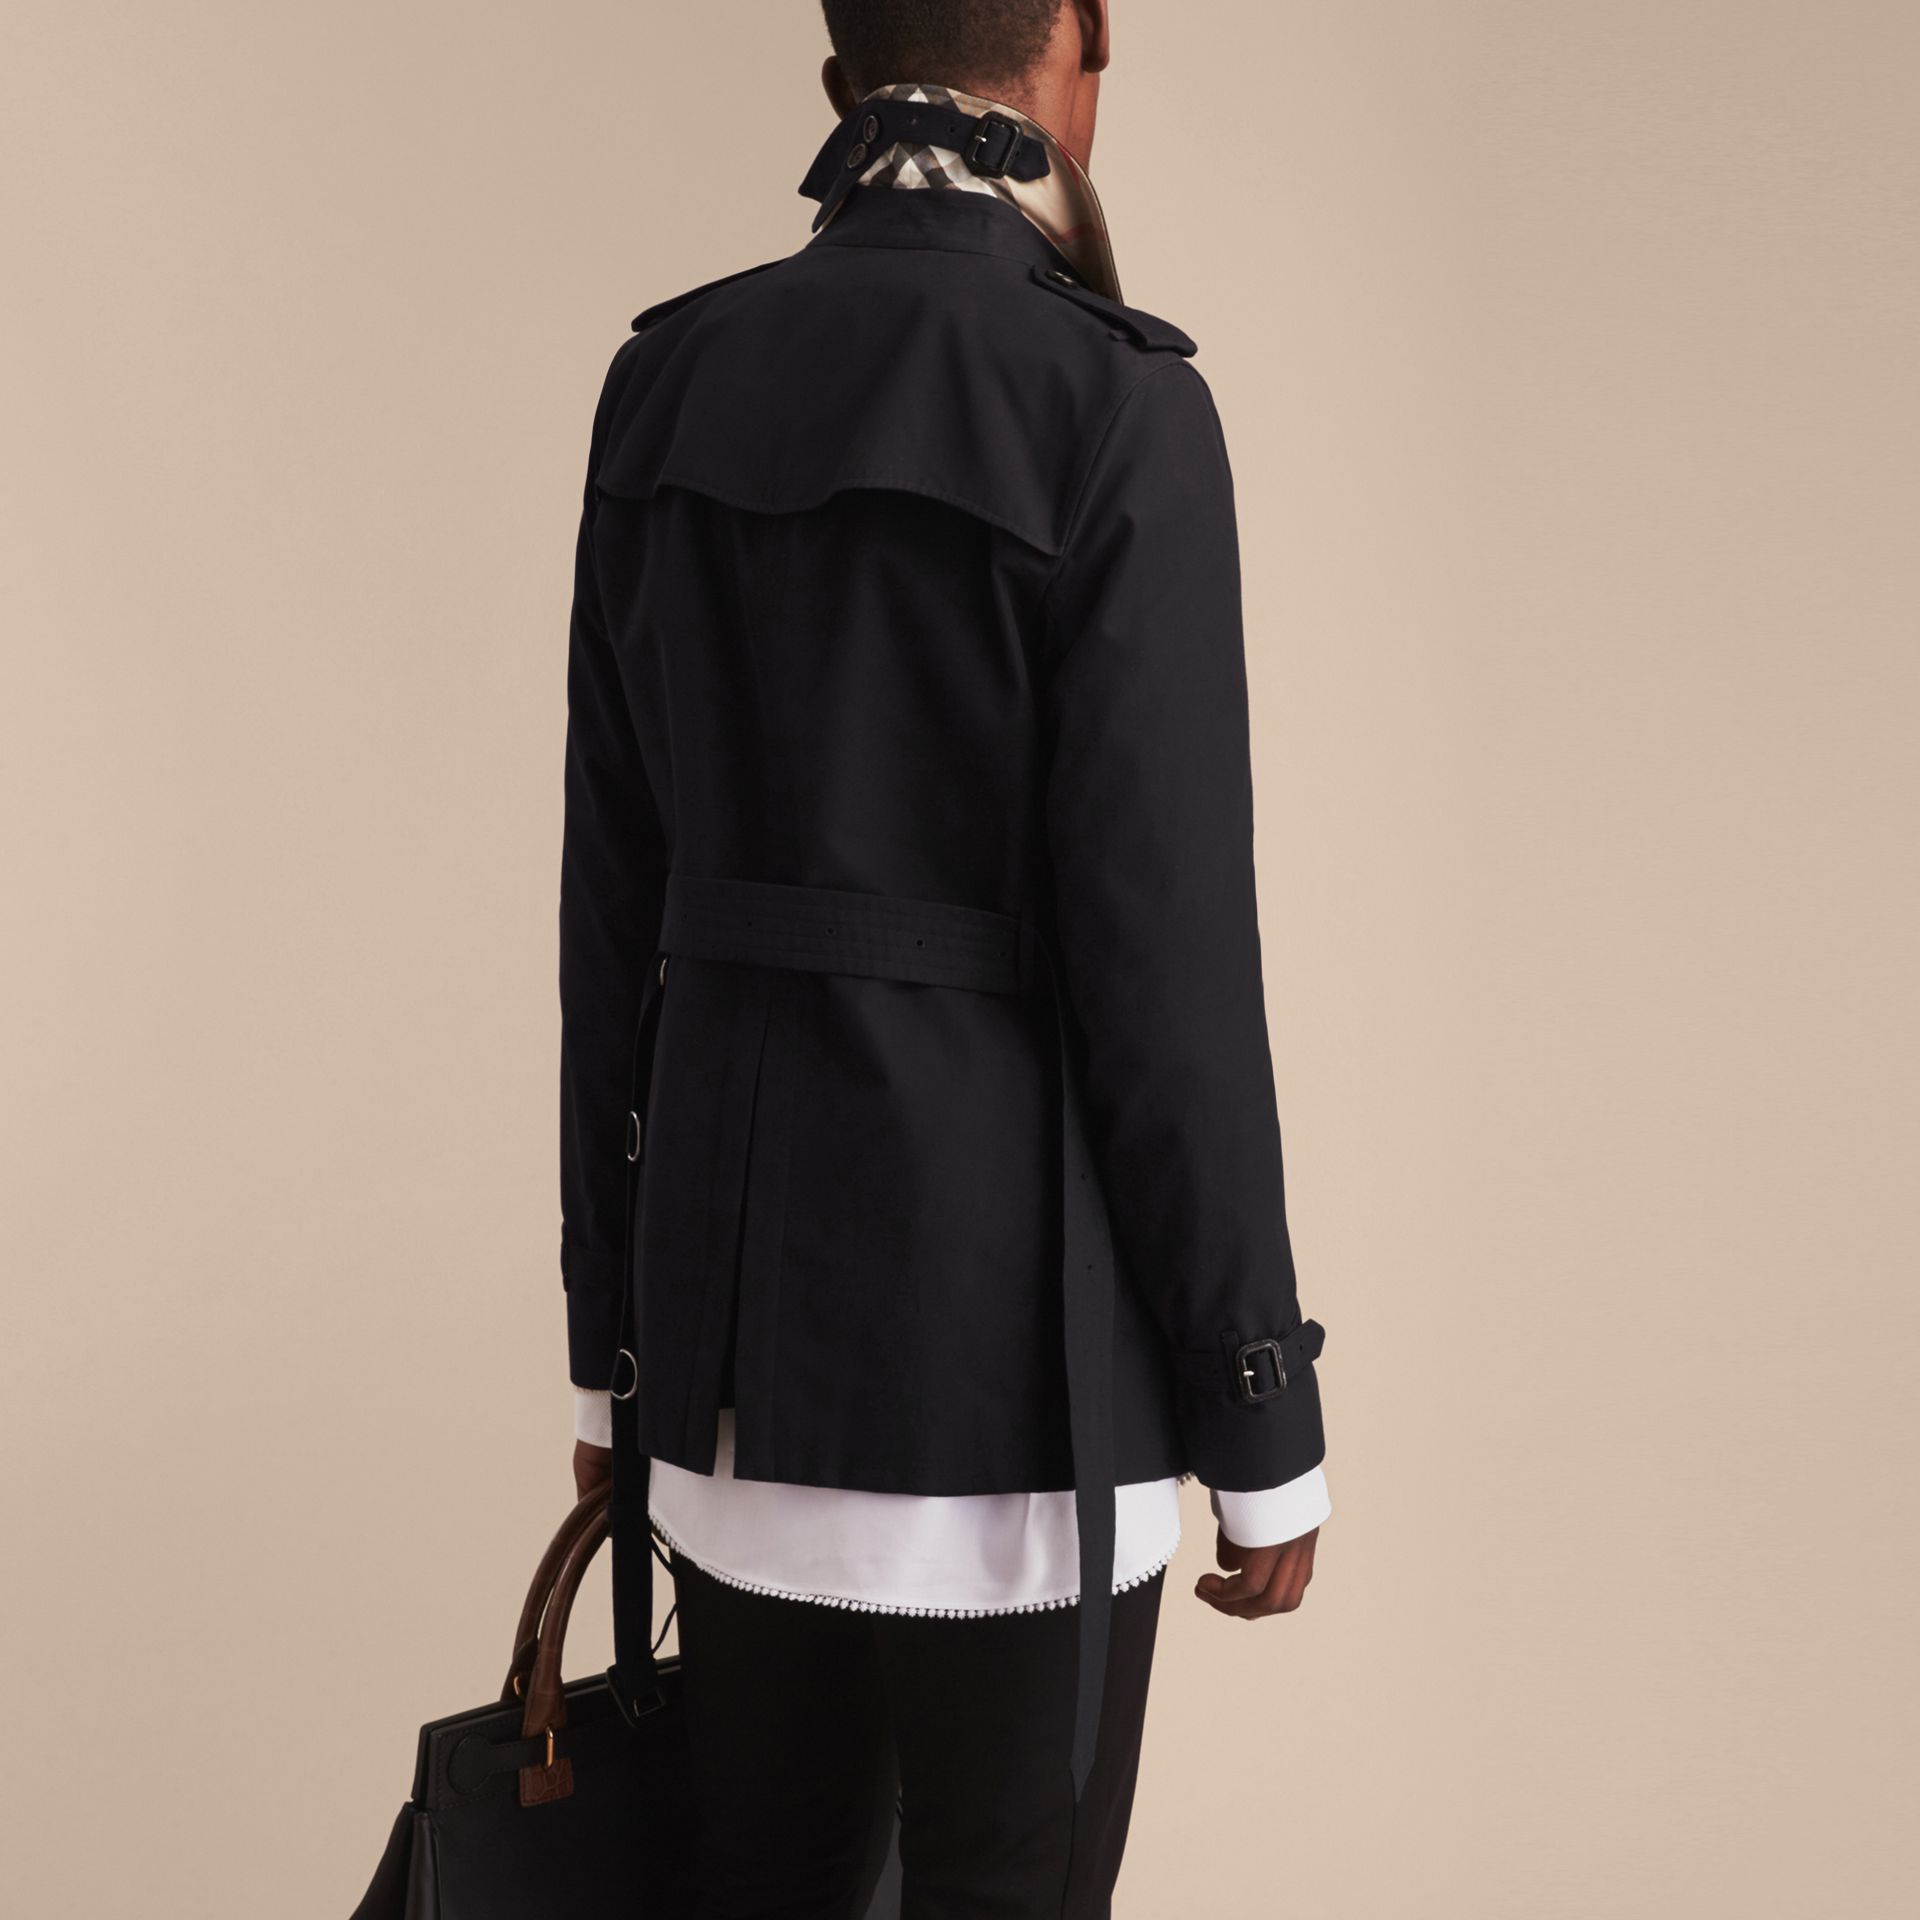 Black The Kensington – Short Heritage Trench Coat Black - gallery image 4